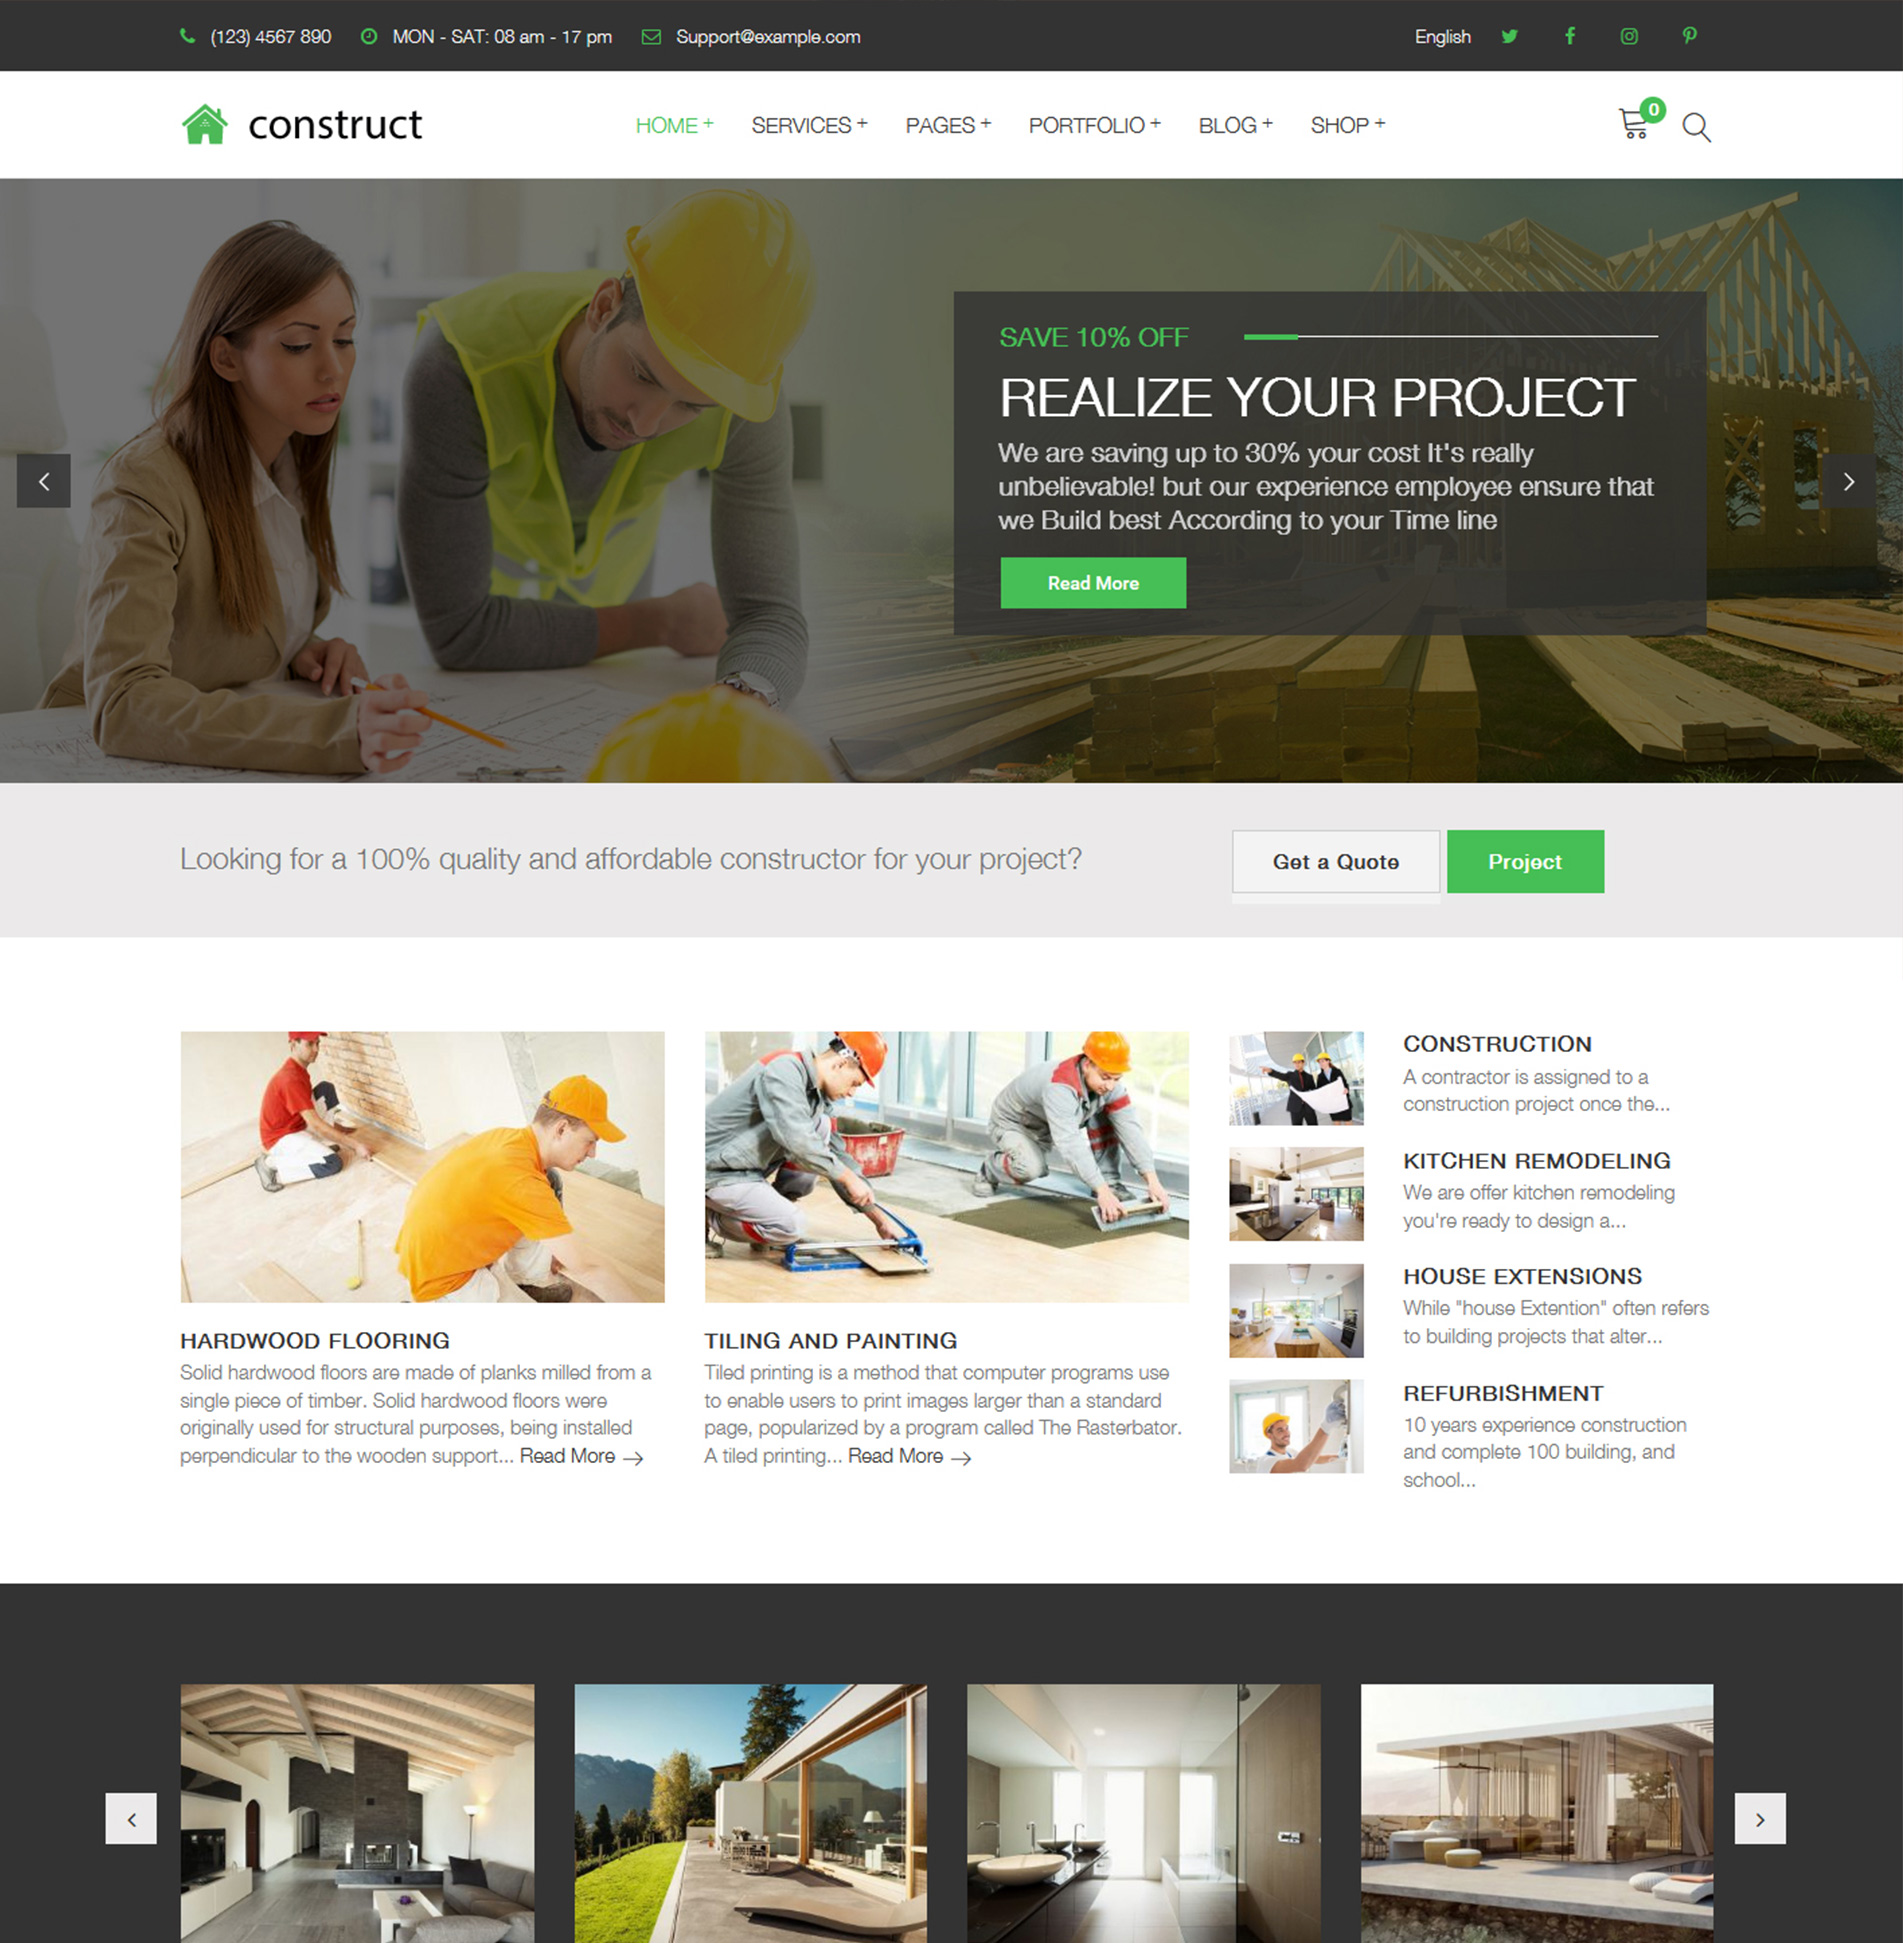 Construct – Construction Renovation Building Business WordPress Theme